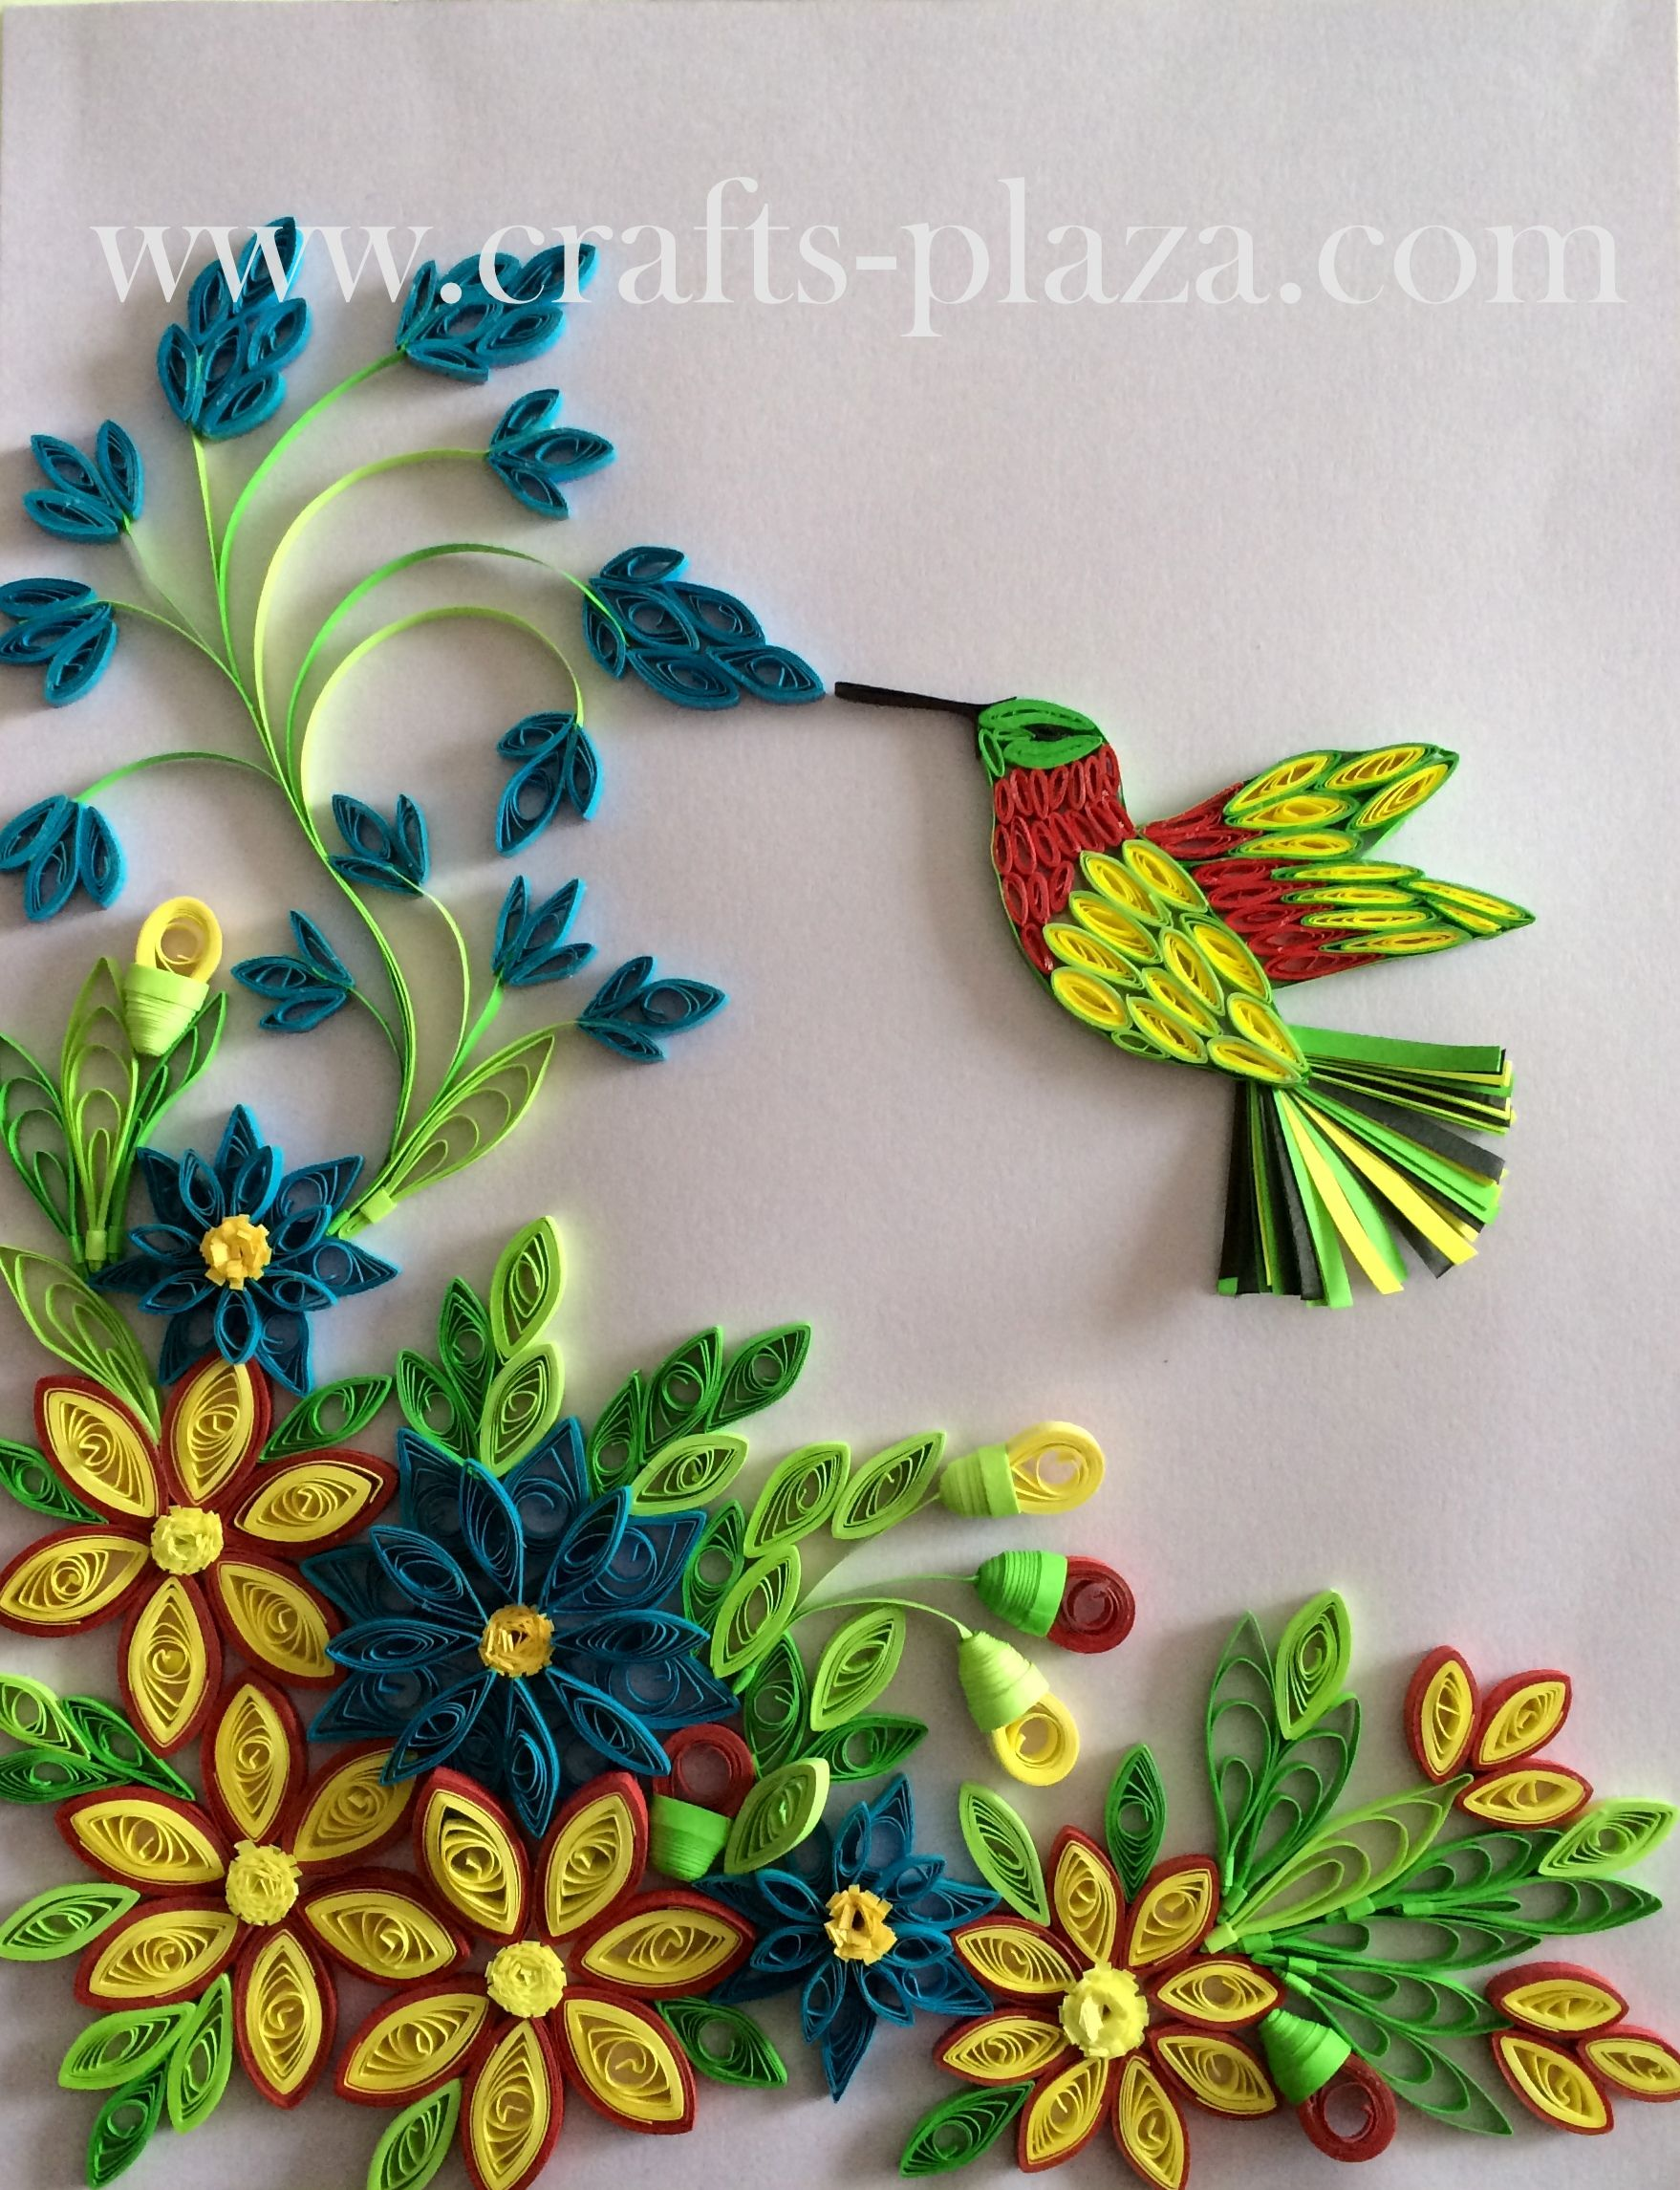 Wall Art Flowers And Birds : Quilled designs can be framed or used to embellish